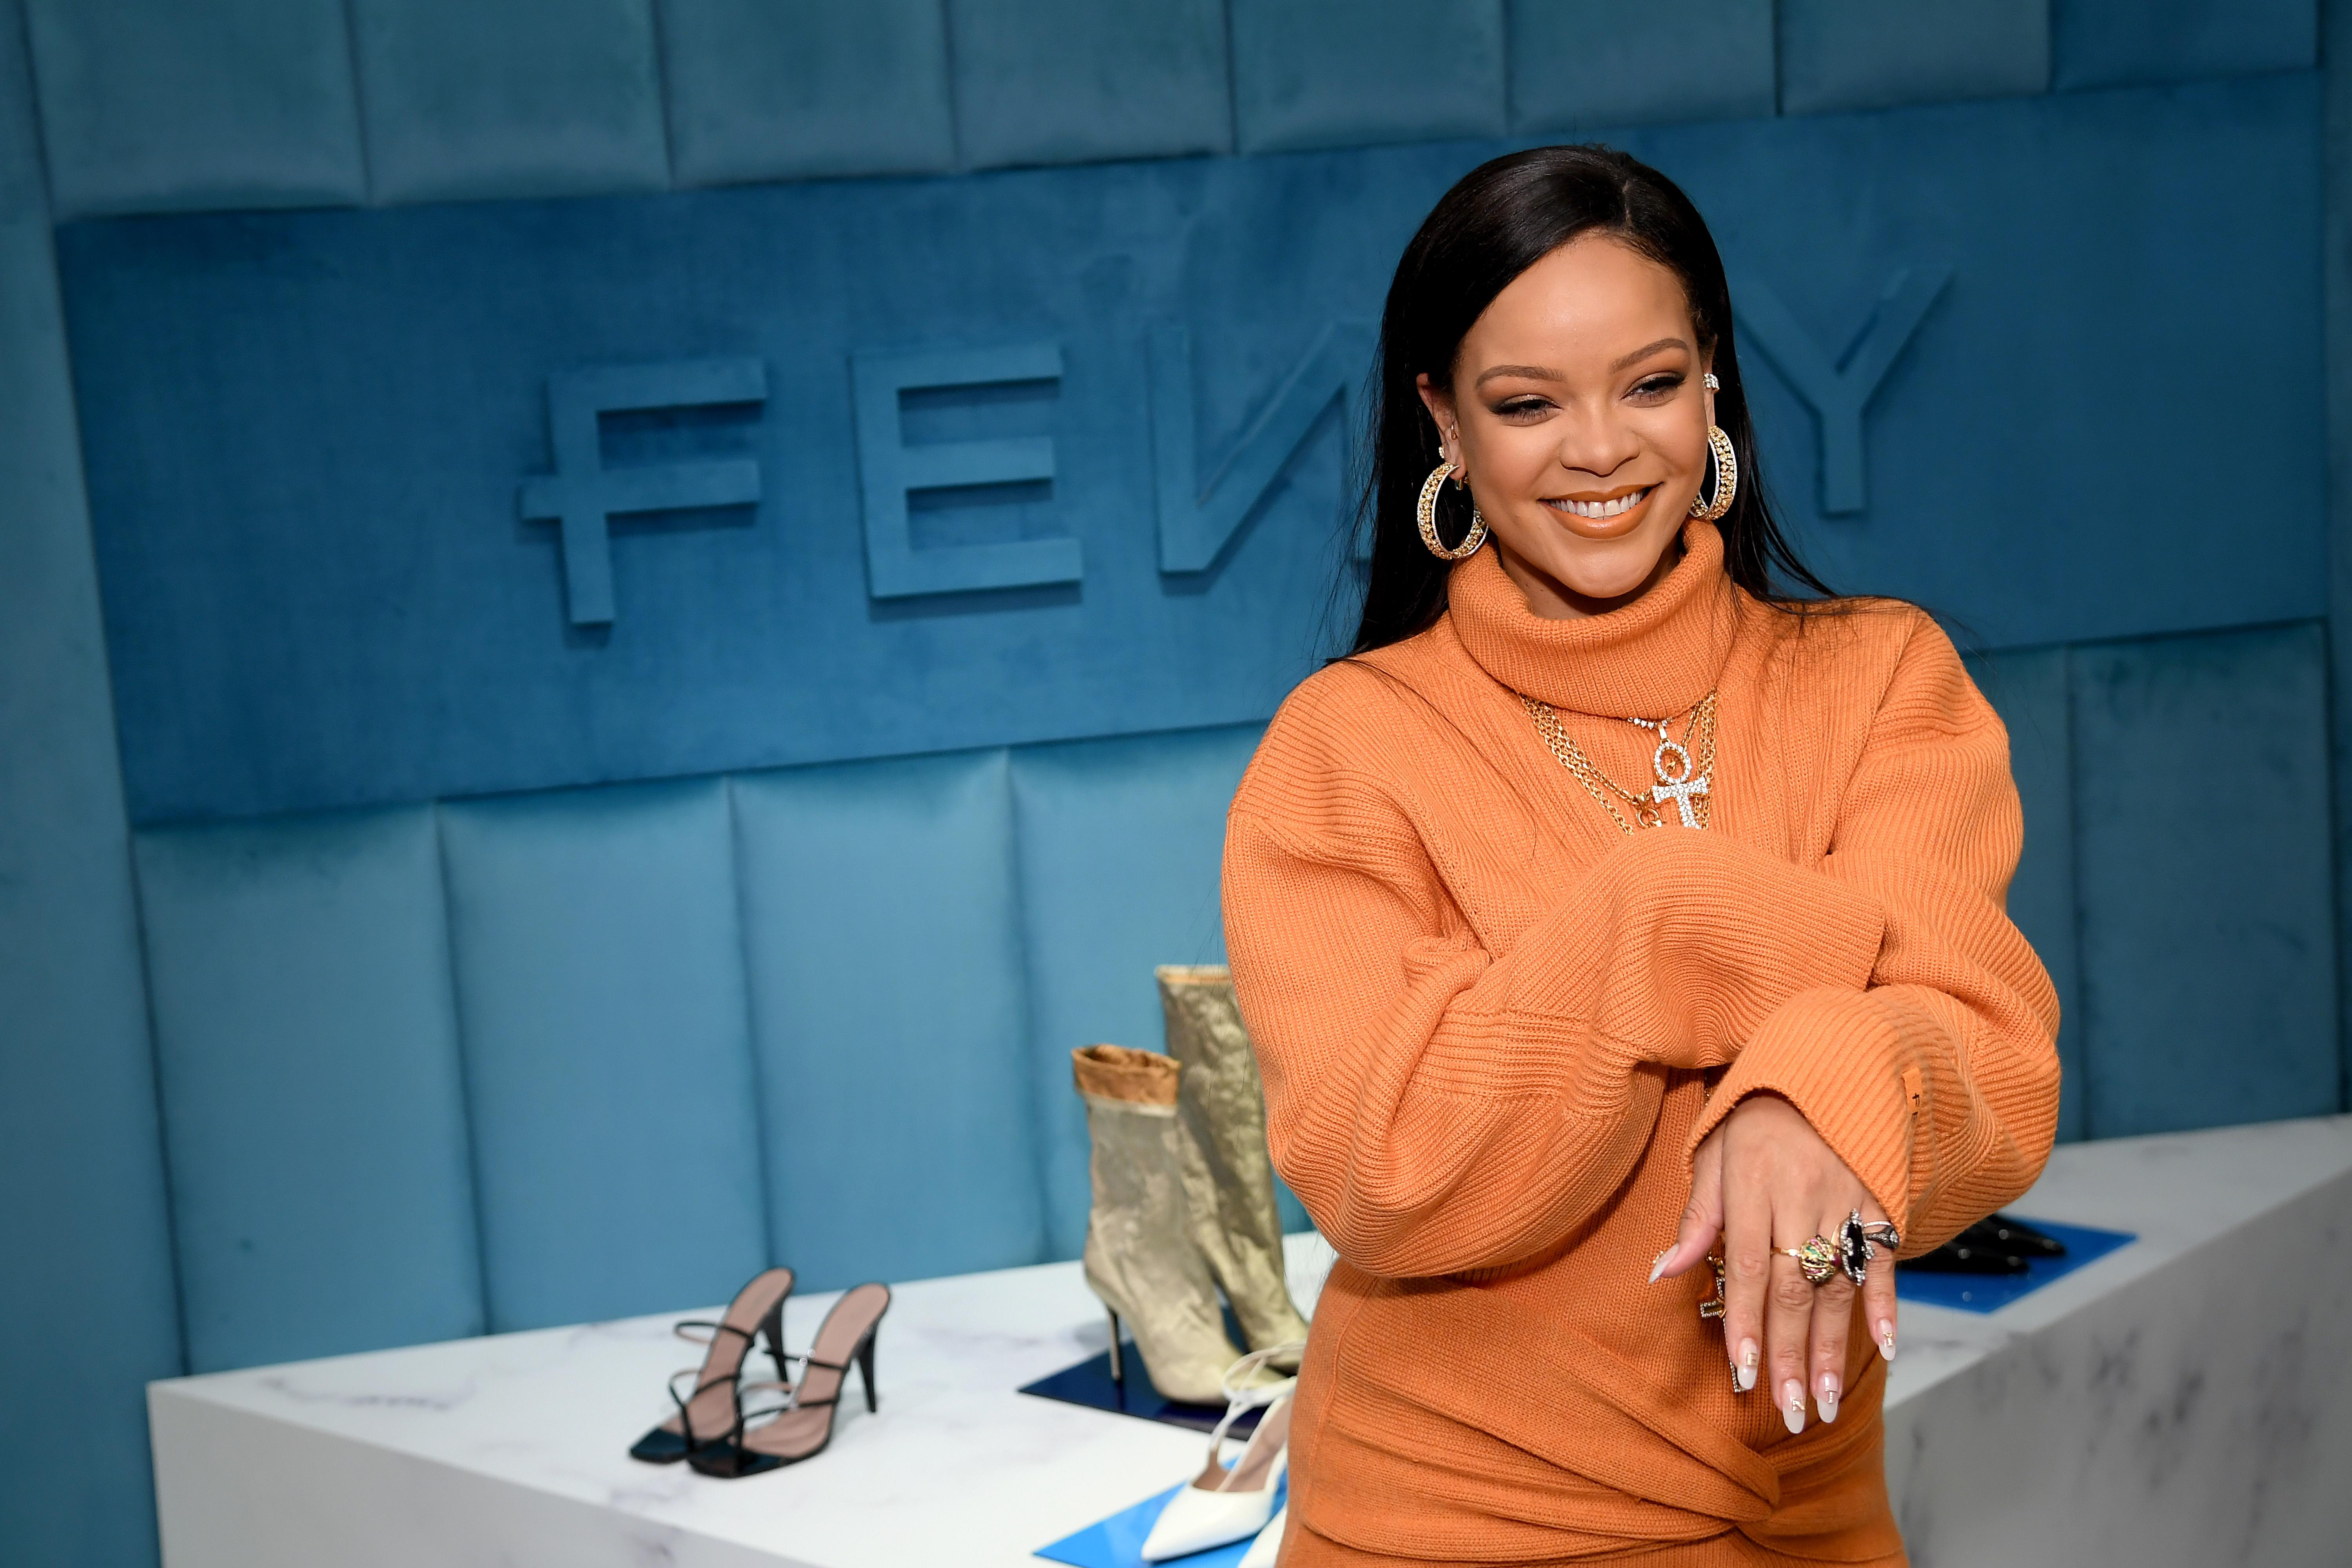 Rihanna sees herself having '3 or 4' kids 10 years from now: 'I know I will want to live differently'